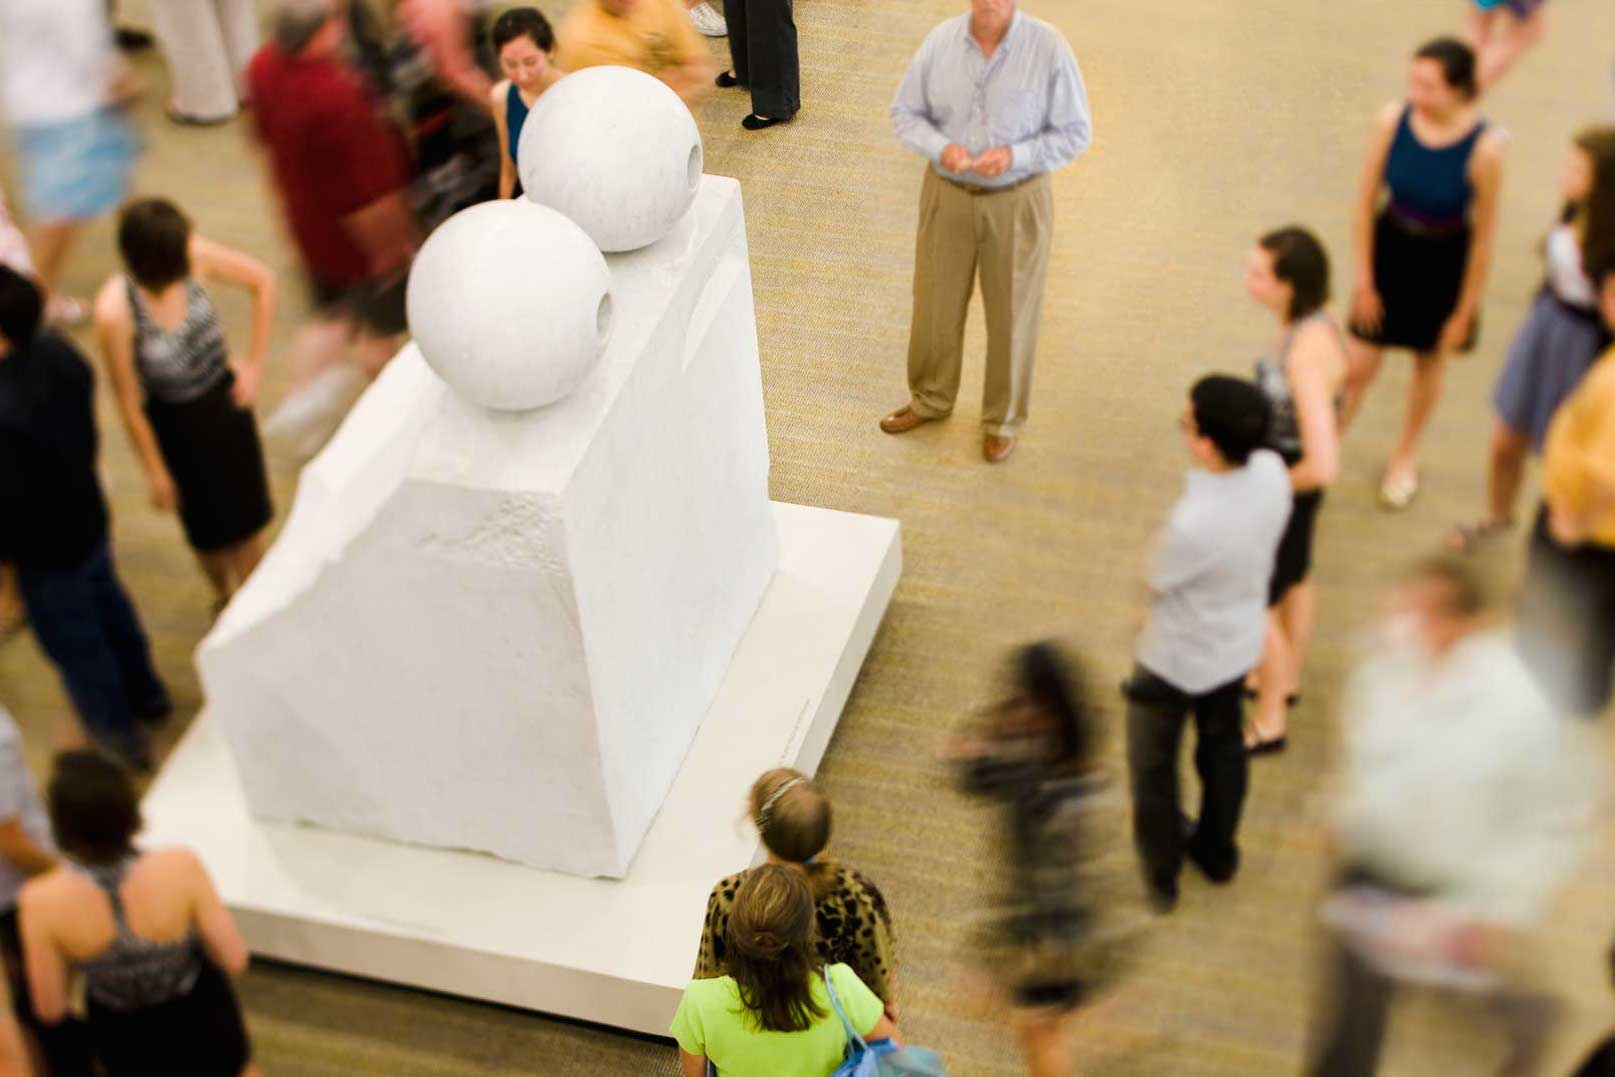 A large white marble sculpture in a room surrounded by people.